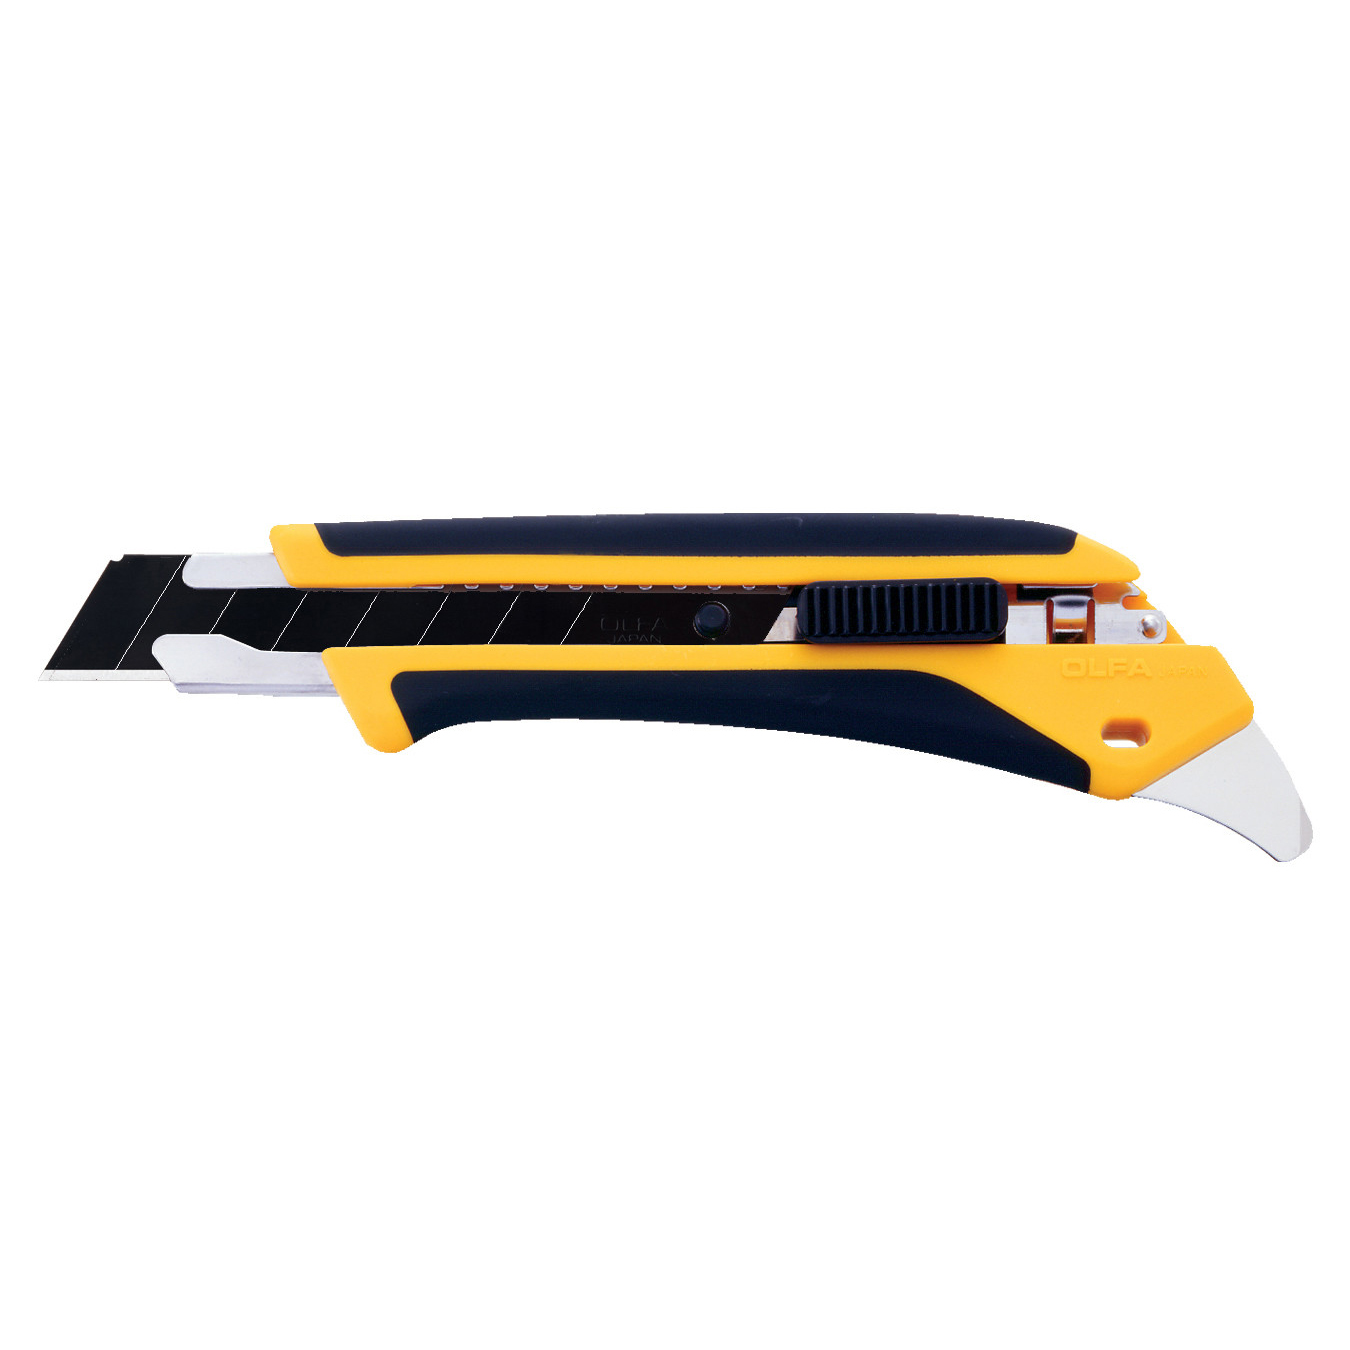 Olfa Knife - Auto-Lock Cutter LA-X